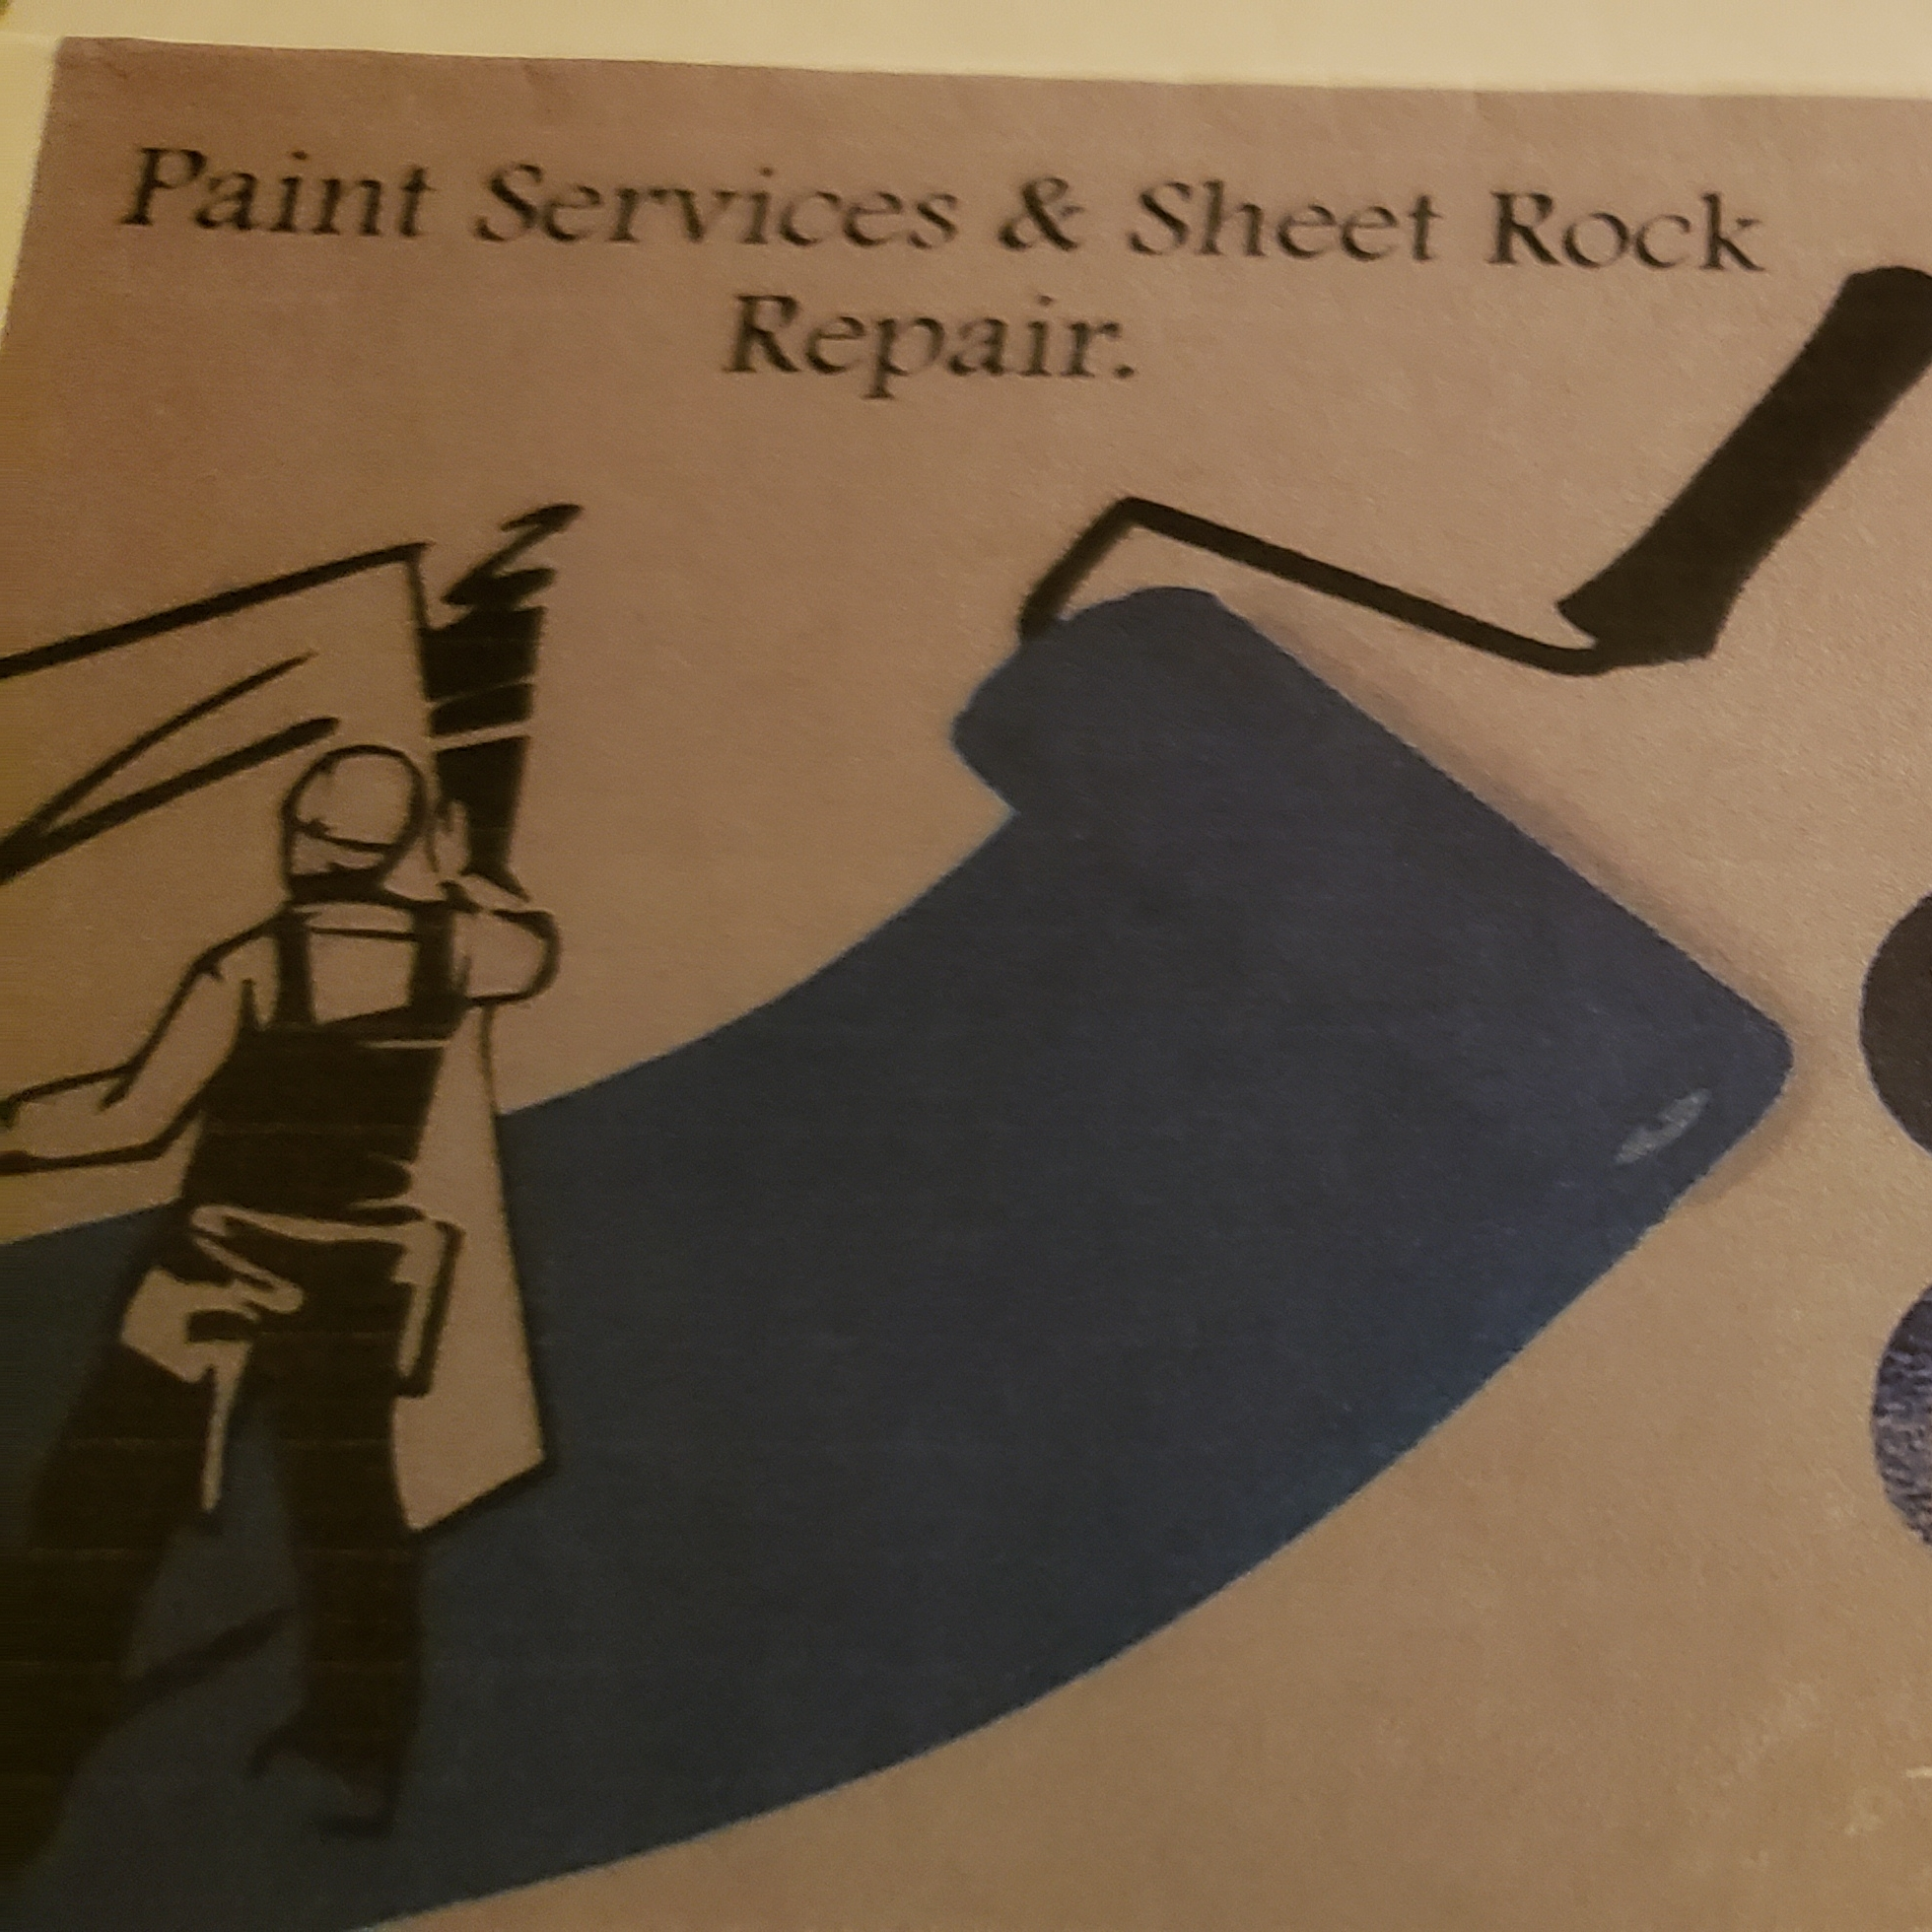 OJM Painting & Sheetrock Repair